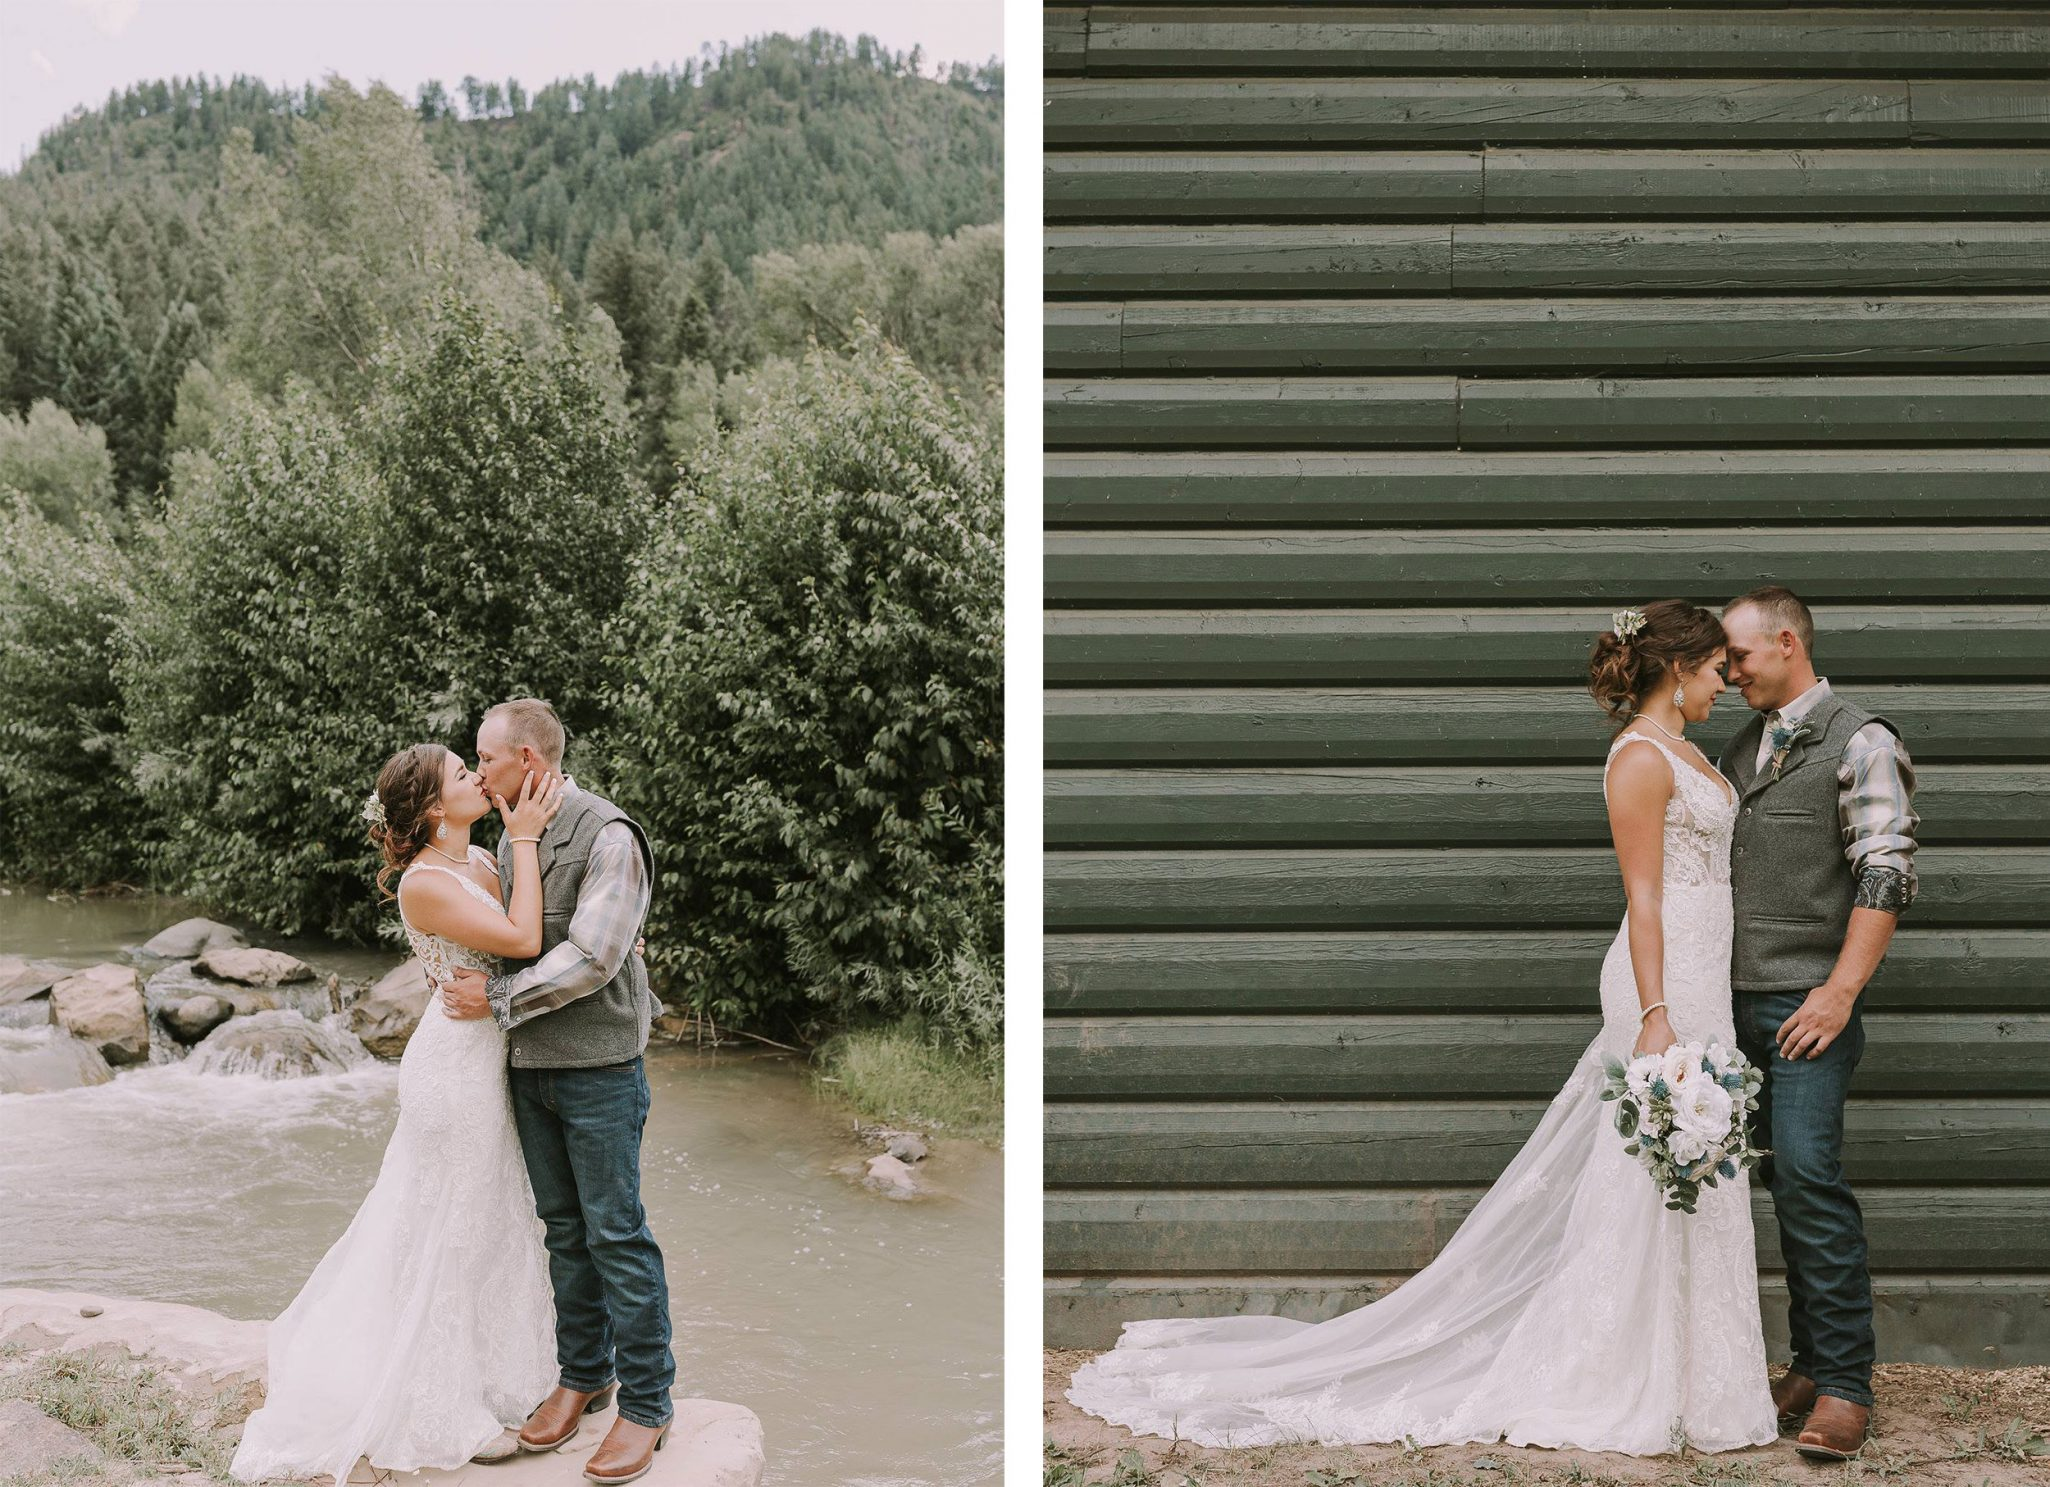 Bride & Groom | Rustic vibe at Paradise Ranch in Pagosa Springs, Colorado